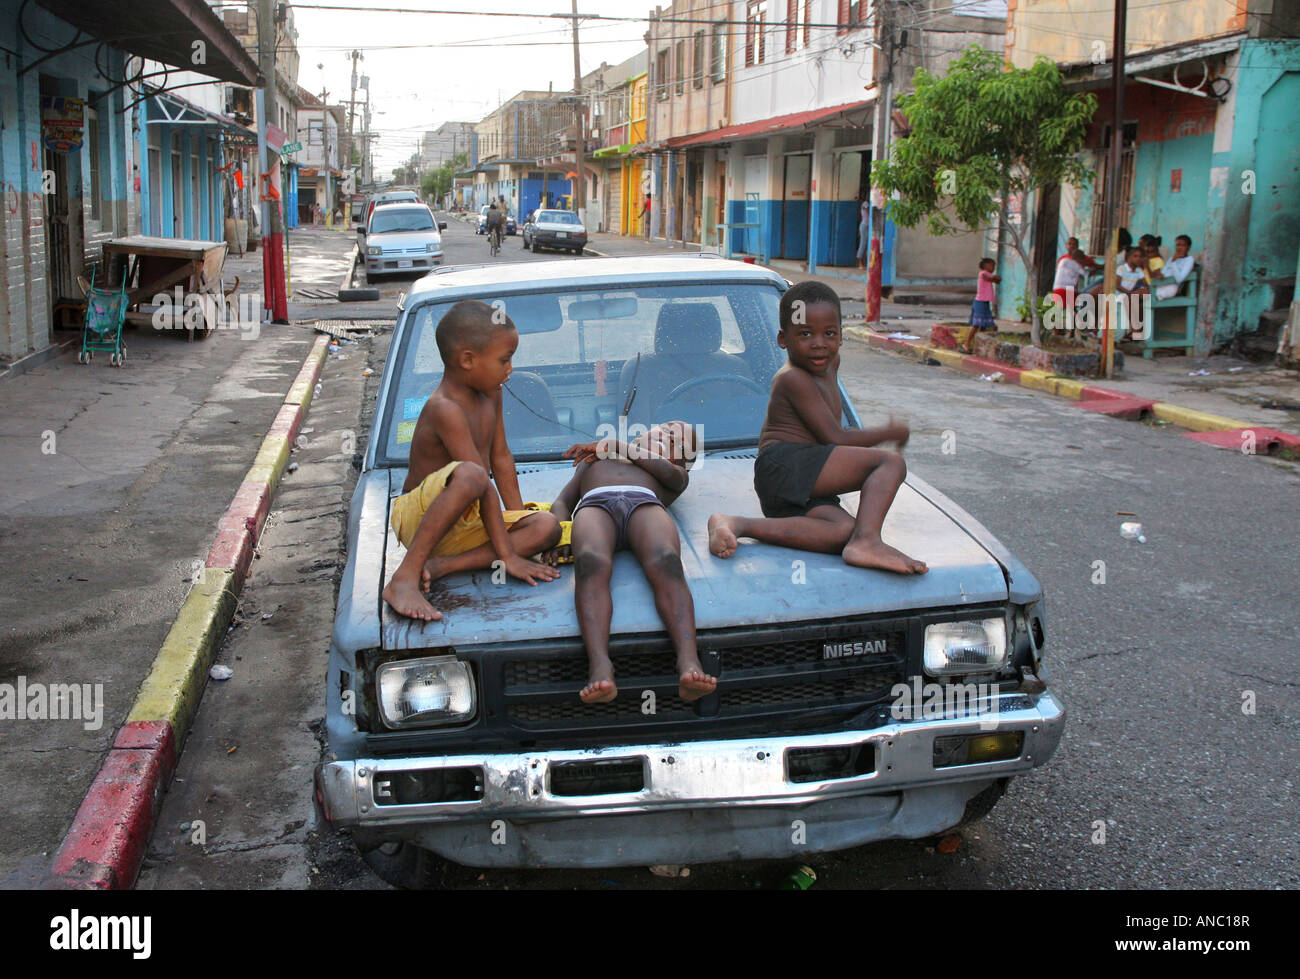 essay on street children in jamaica Free essay: children's literature in jamaica as children in the united states, we grow up listening to the stories of dr seuss and curious george as we fall.